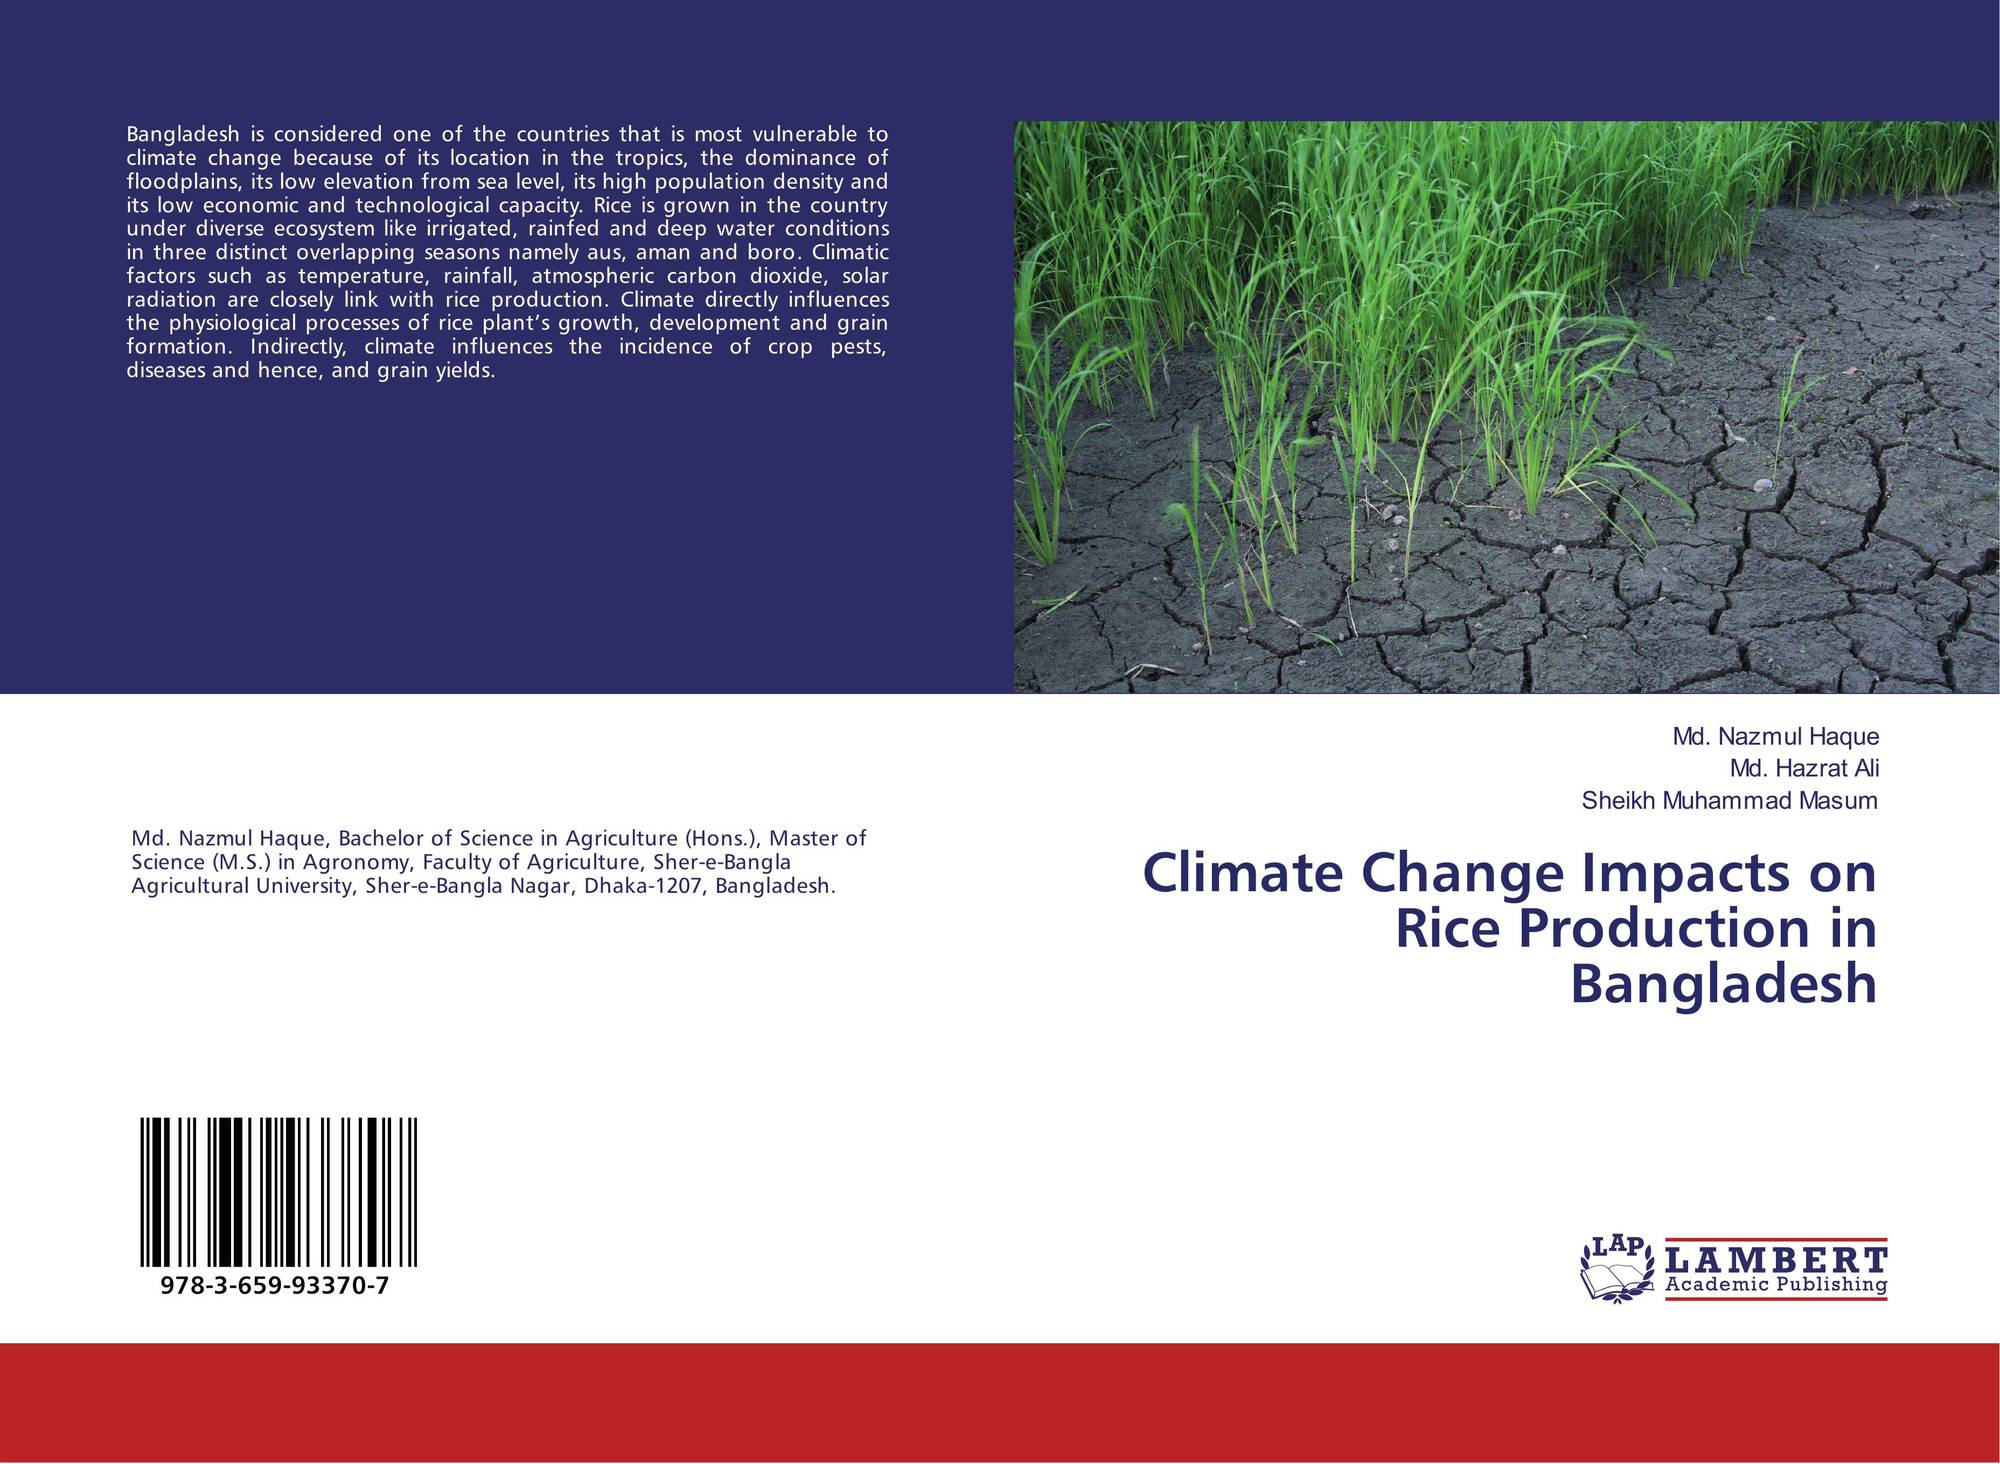 impact of salinity on rice production 287 290 426 307 274 80 337 40 87  cause & impact of salinity  investigate the impacts of salinity on rice production 2 investigate the utilization of factors.